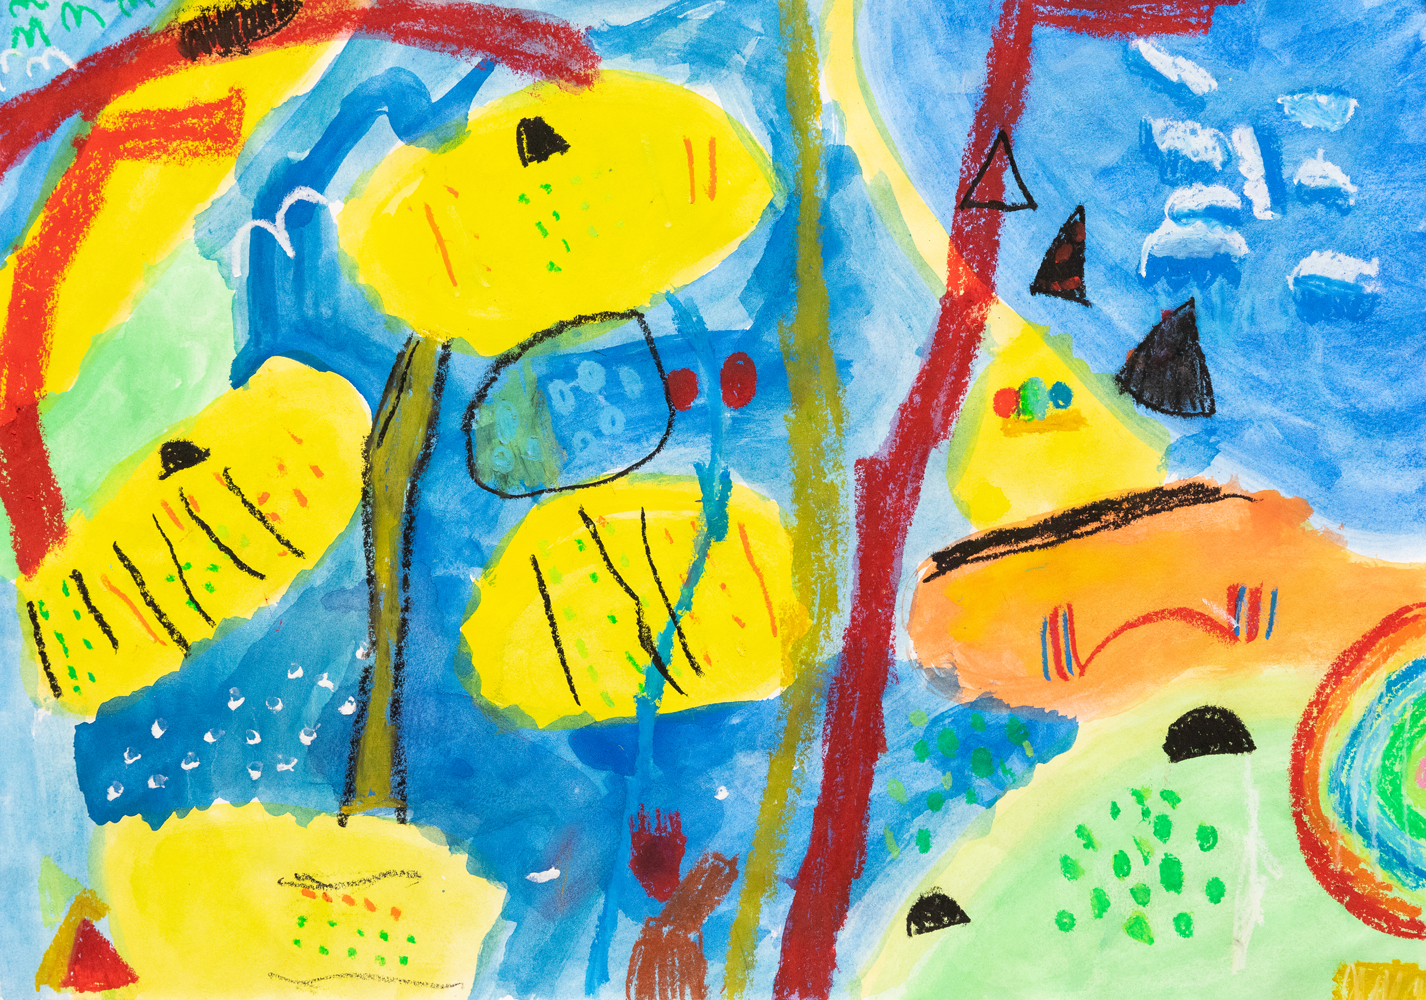 06. Indie Powell, 'Land of colour', crayon, watercolour, Year 2, St Patrick's School, Walcha